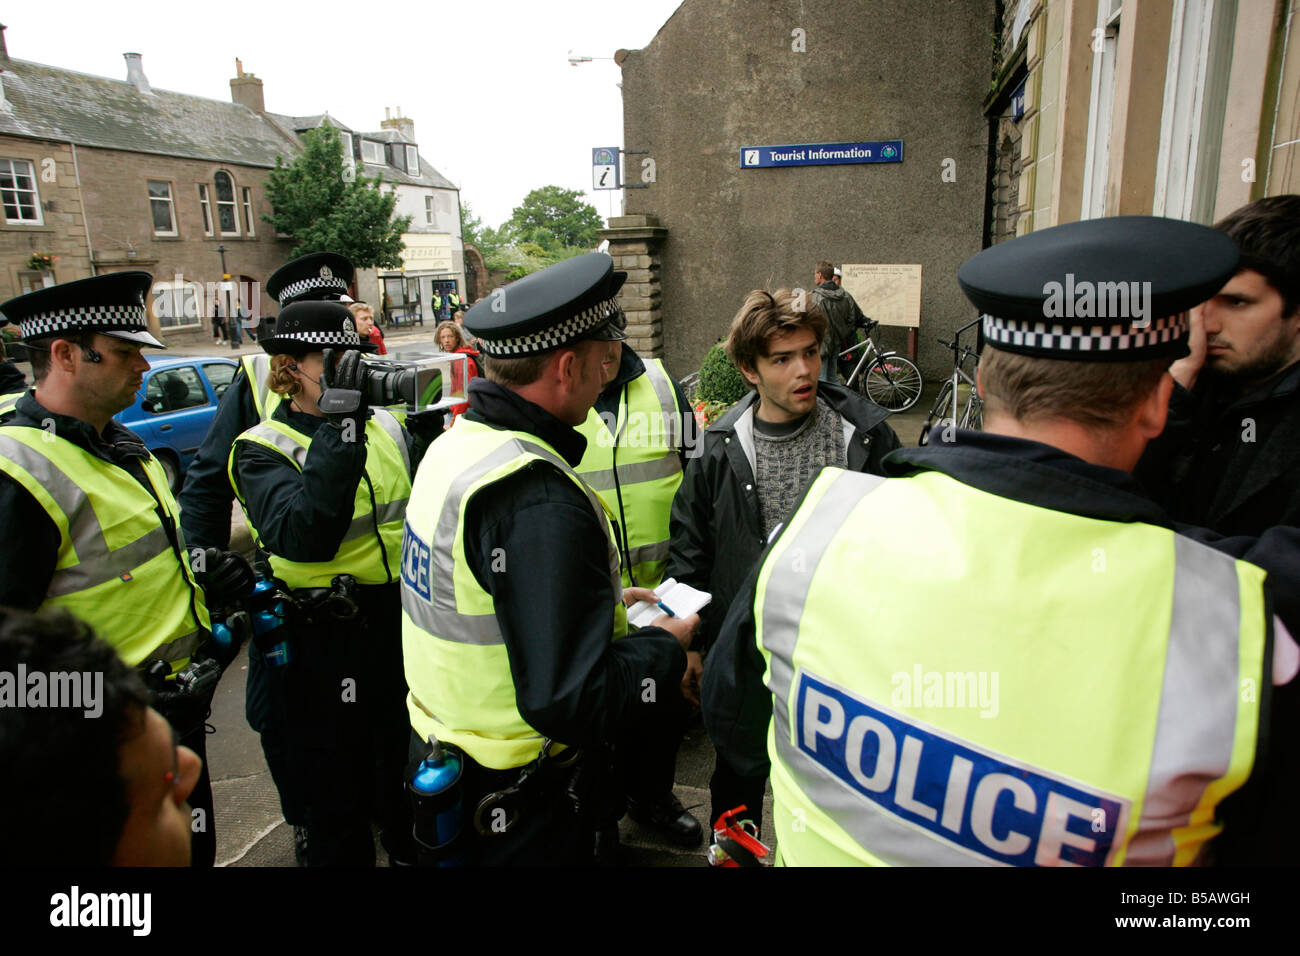 G8 protester stop and searched by police gleneagles - Stock Image